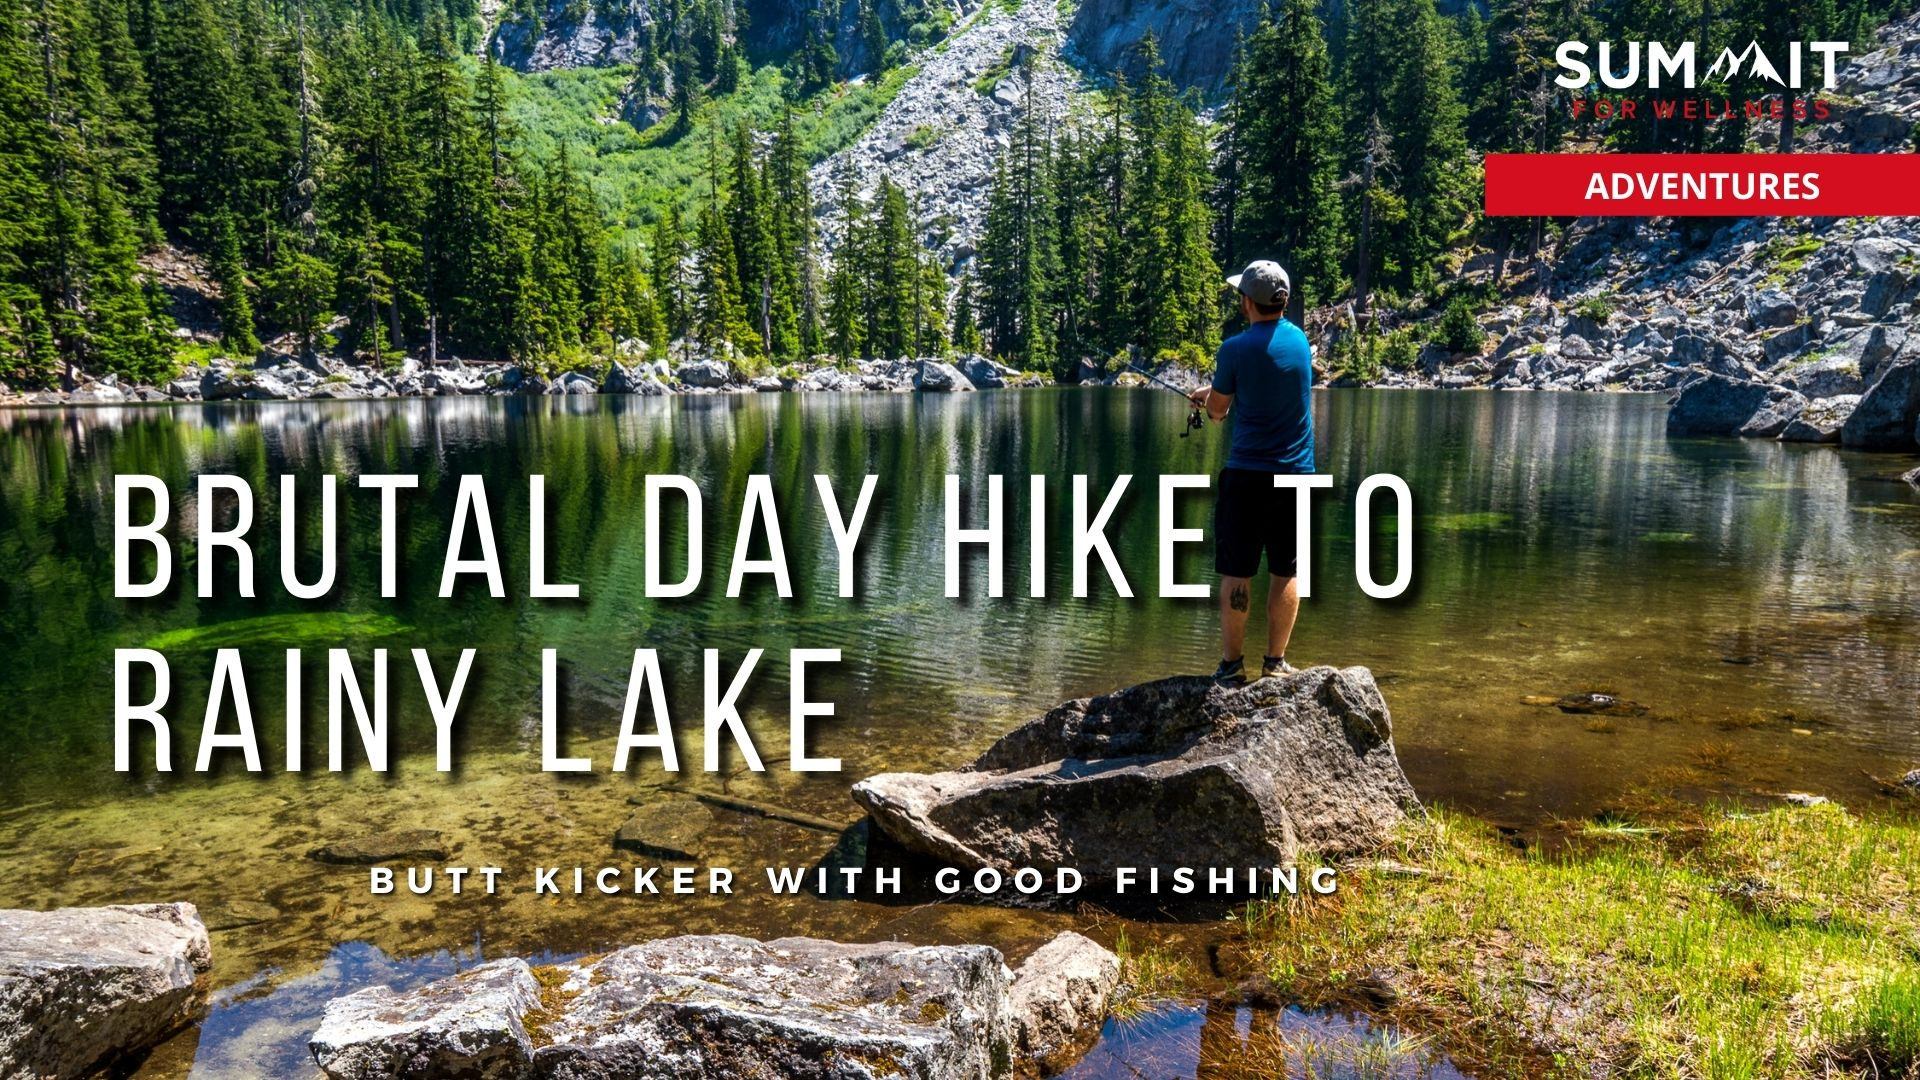 Hiking to Rainy Lake is a butt kicker with great fishing rewards.